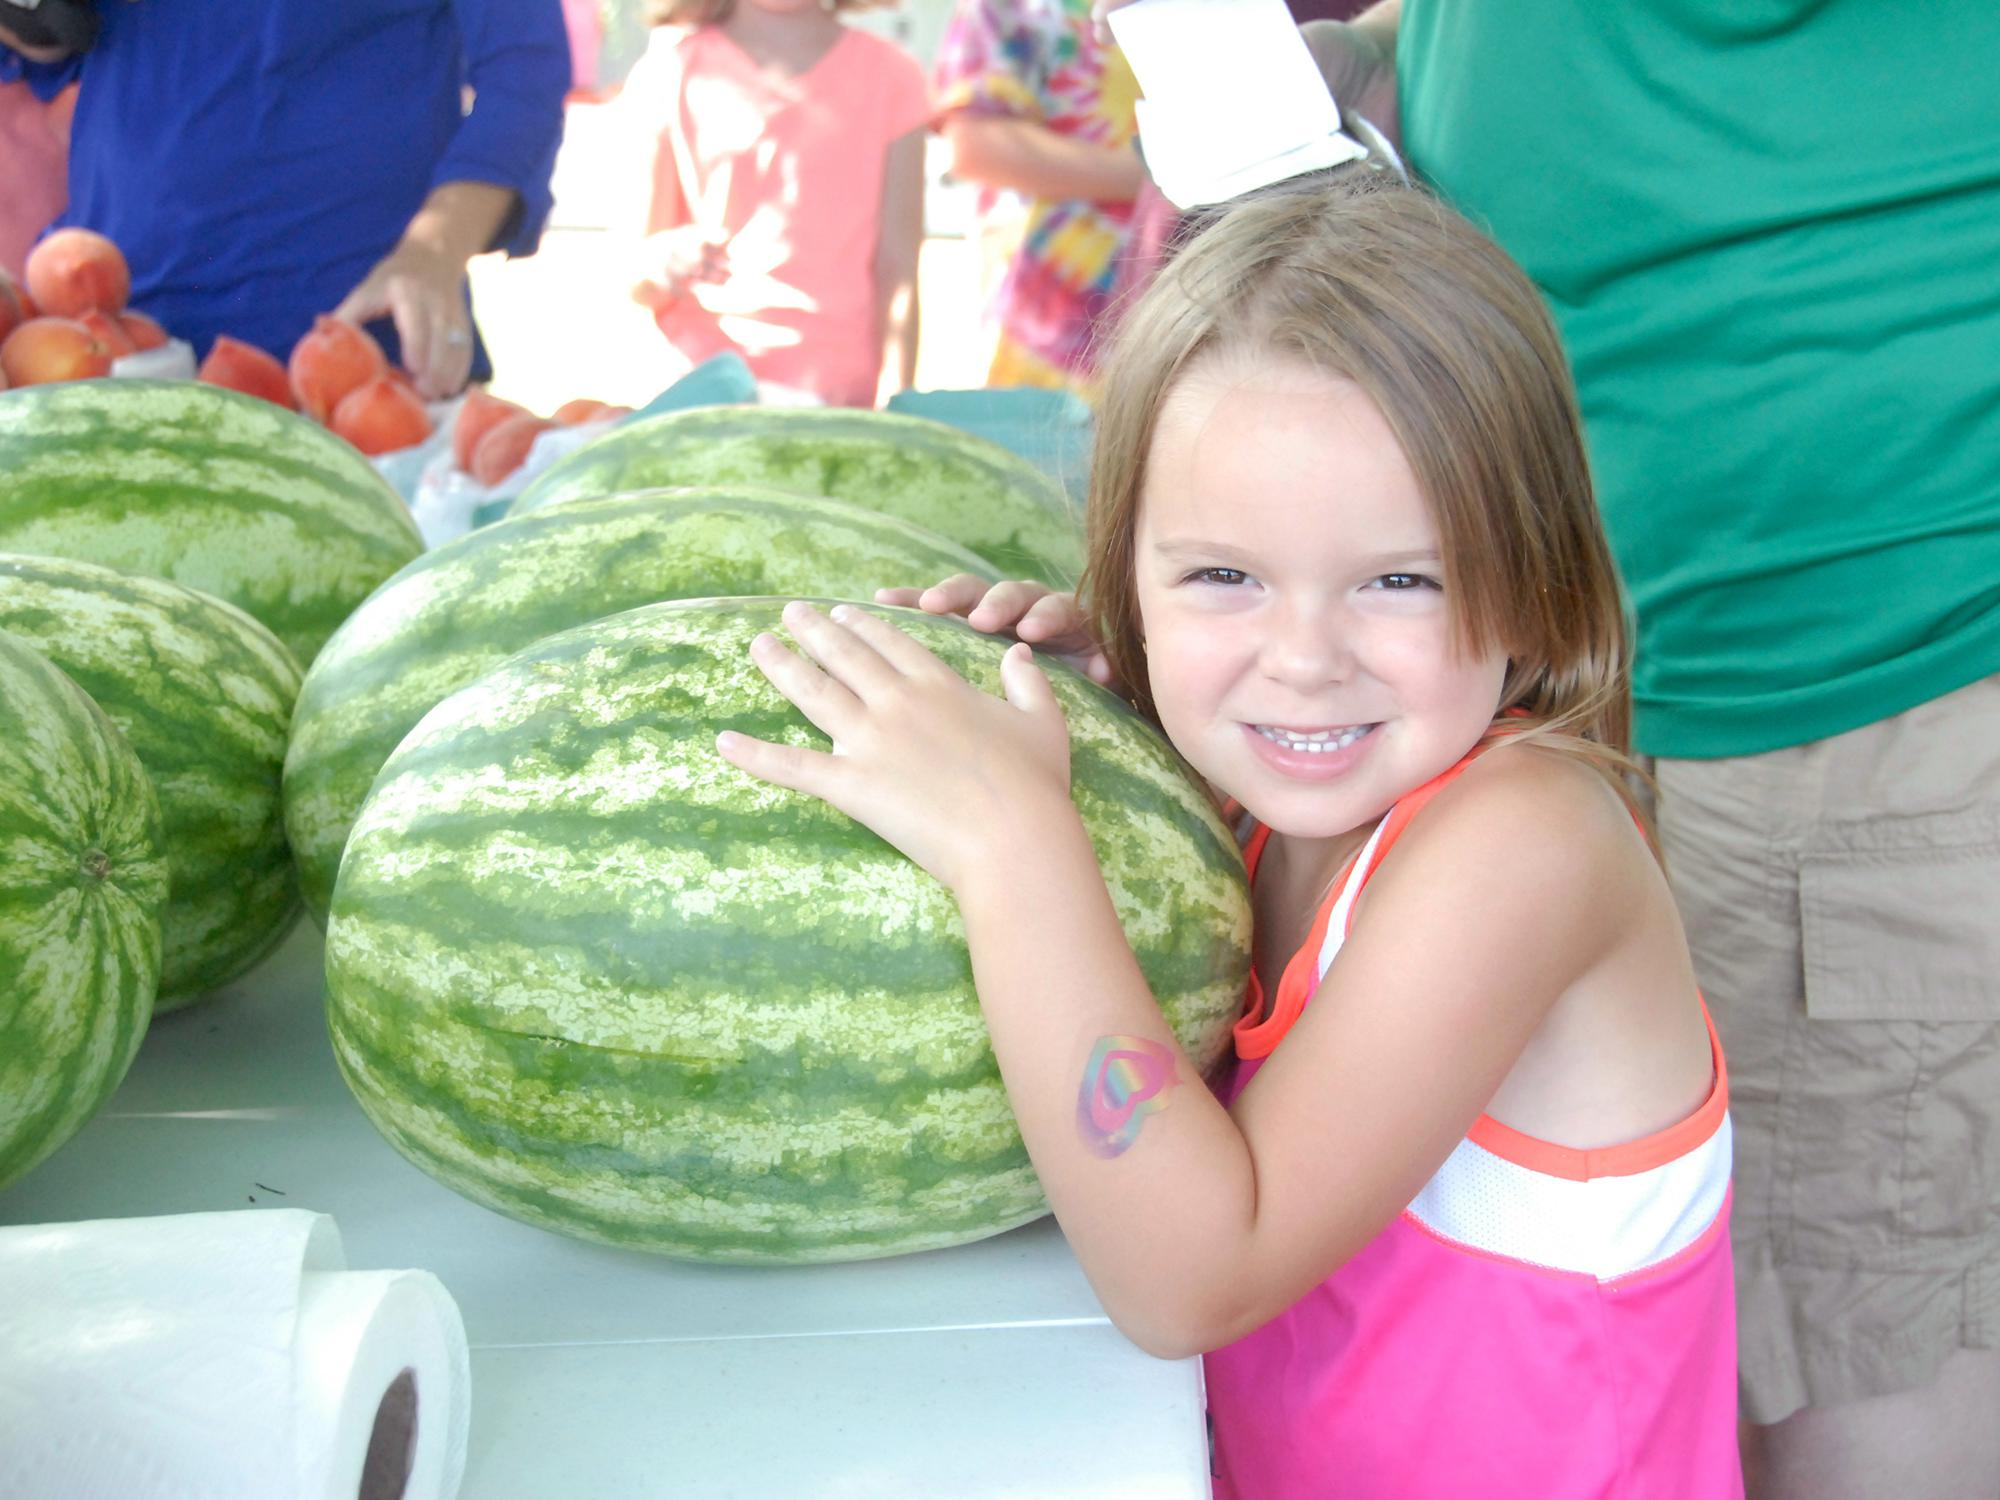 Emily Grace Barnette is ready to take this watermelon home from the Starkville Community Market on June 21, 2016. (Photo by MSU Extension Service/Linda Breazeale)